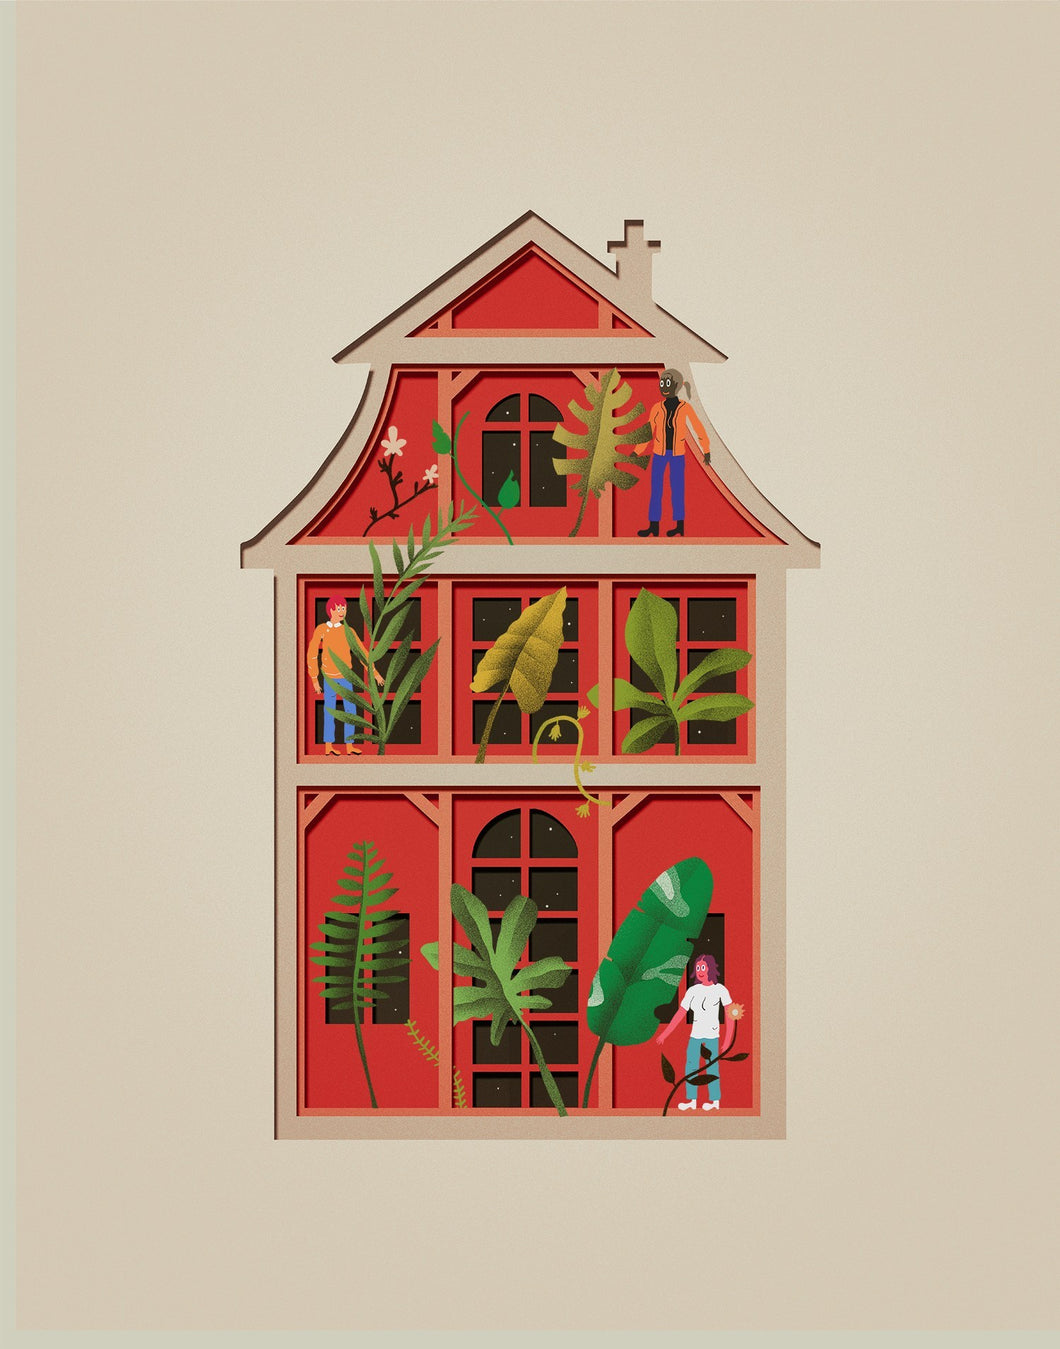 MAISON DE PAPIER 2 - ILLUSTRATION